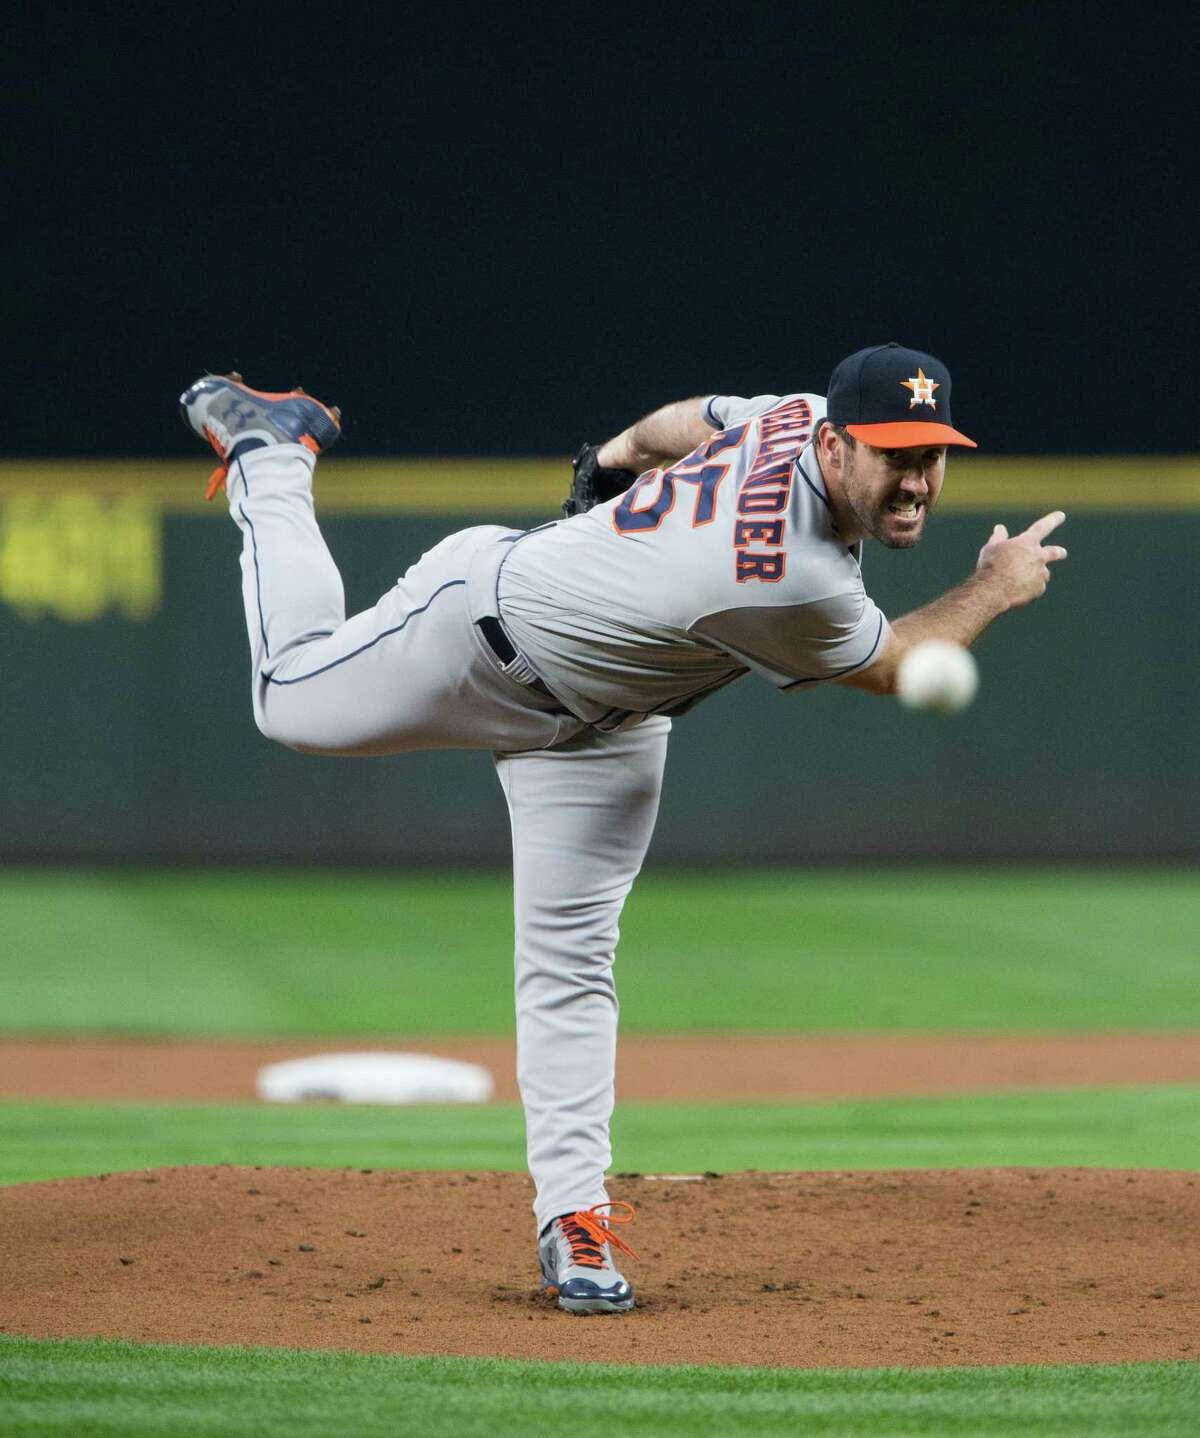 SEATTLE, WA - SEPTEMBER 05: Justin Verlander #35 of the Houston Astros pitches in the first inning against the Seattle Mariners in his Astros debut at Safeco Field on September 5, 2017 in Seattle, Washington. (Photo by Lindsey Wasson/Getty Images)